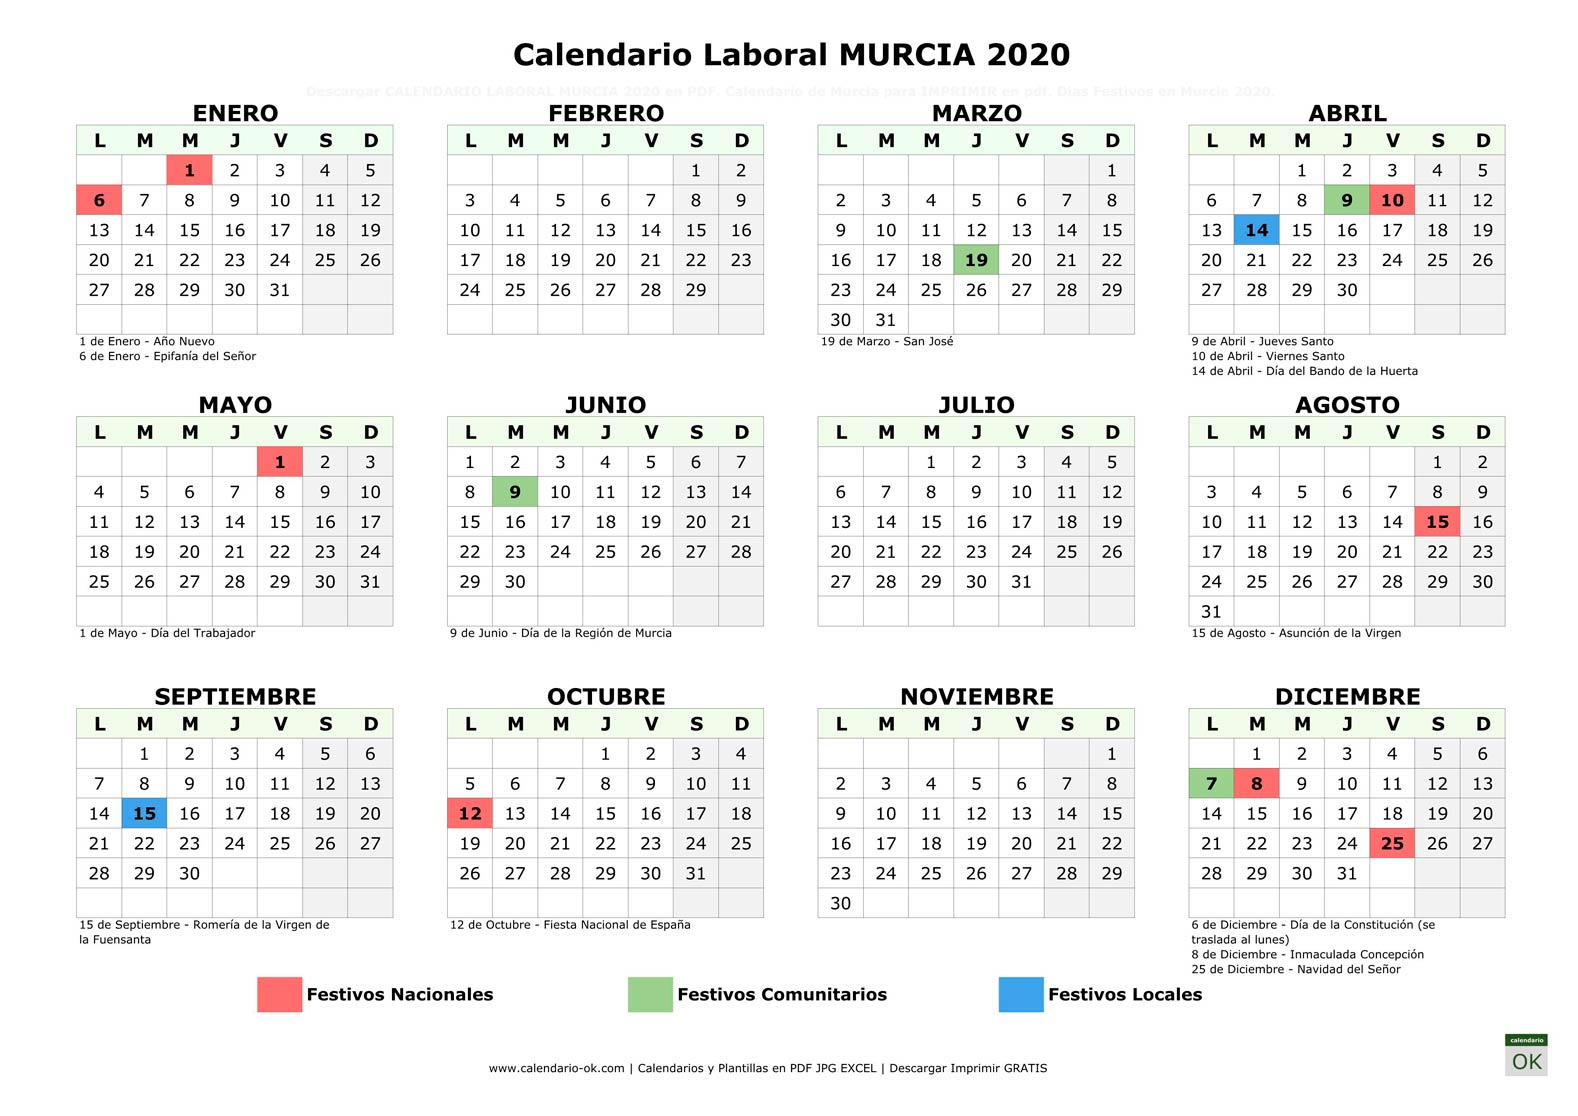 Calendario Laboral MURCIA 2020 horizontal